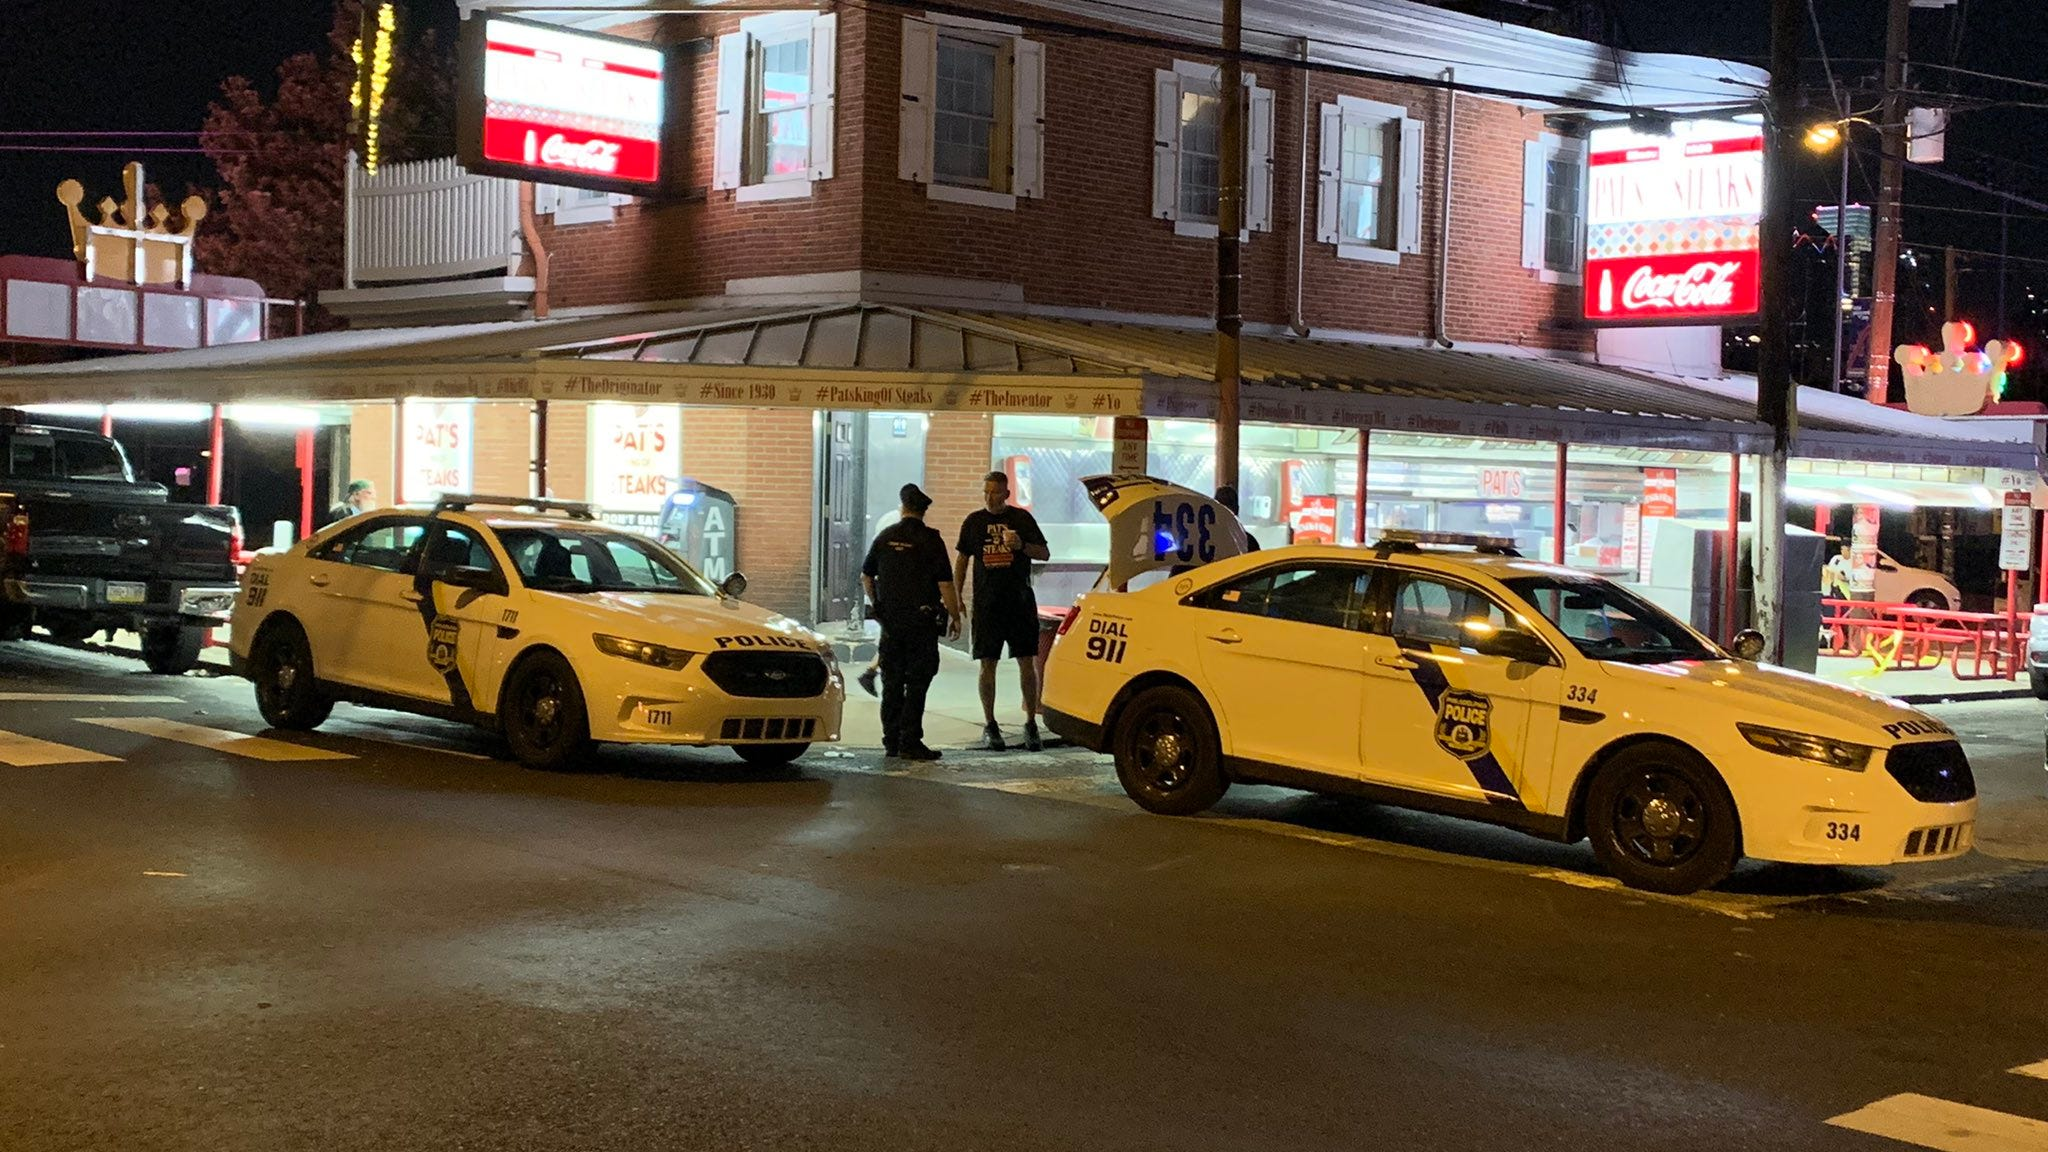 Second suspect arrested for fatal shooting at Pat's Steaks